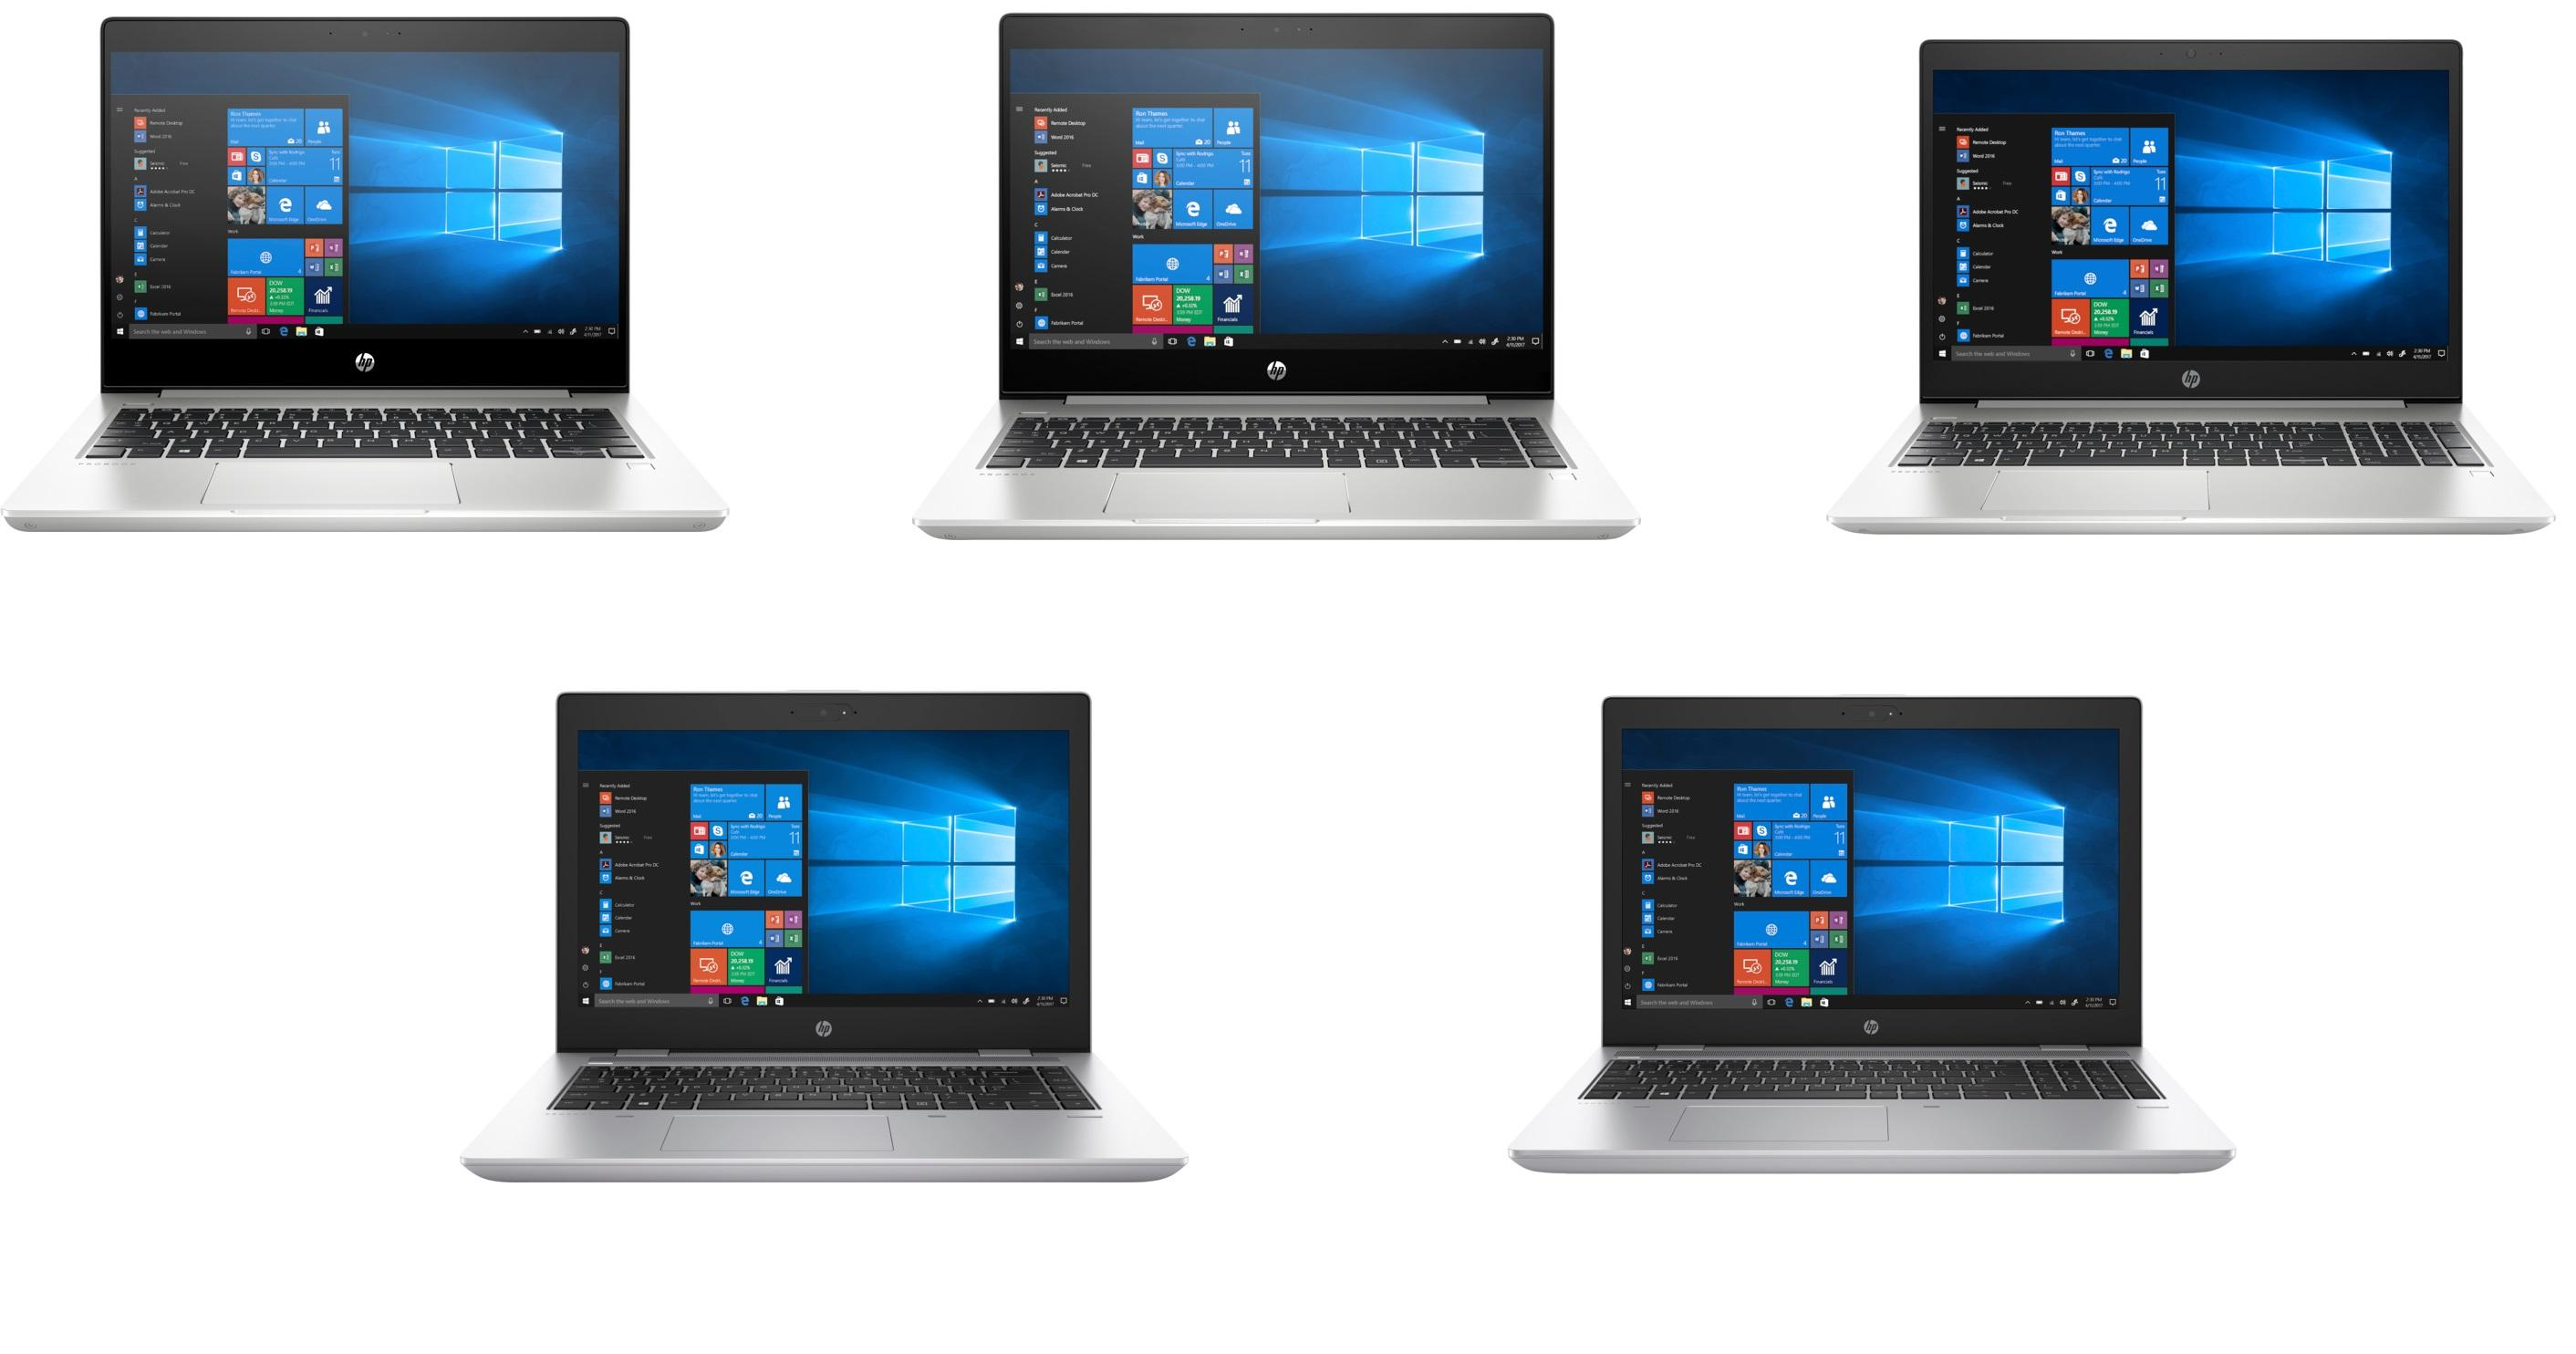 HP ProBook Notebooks